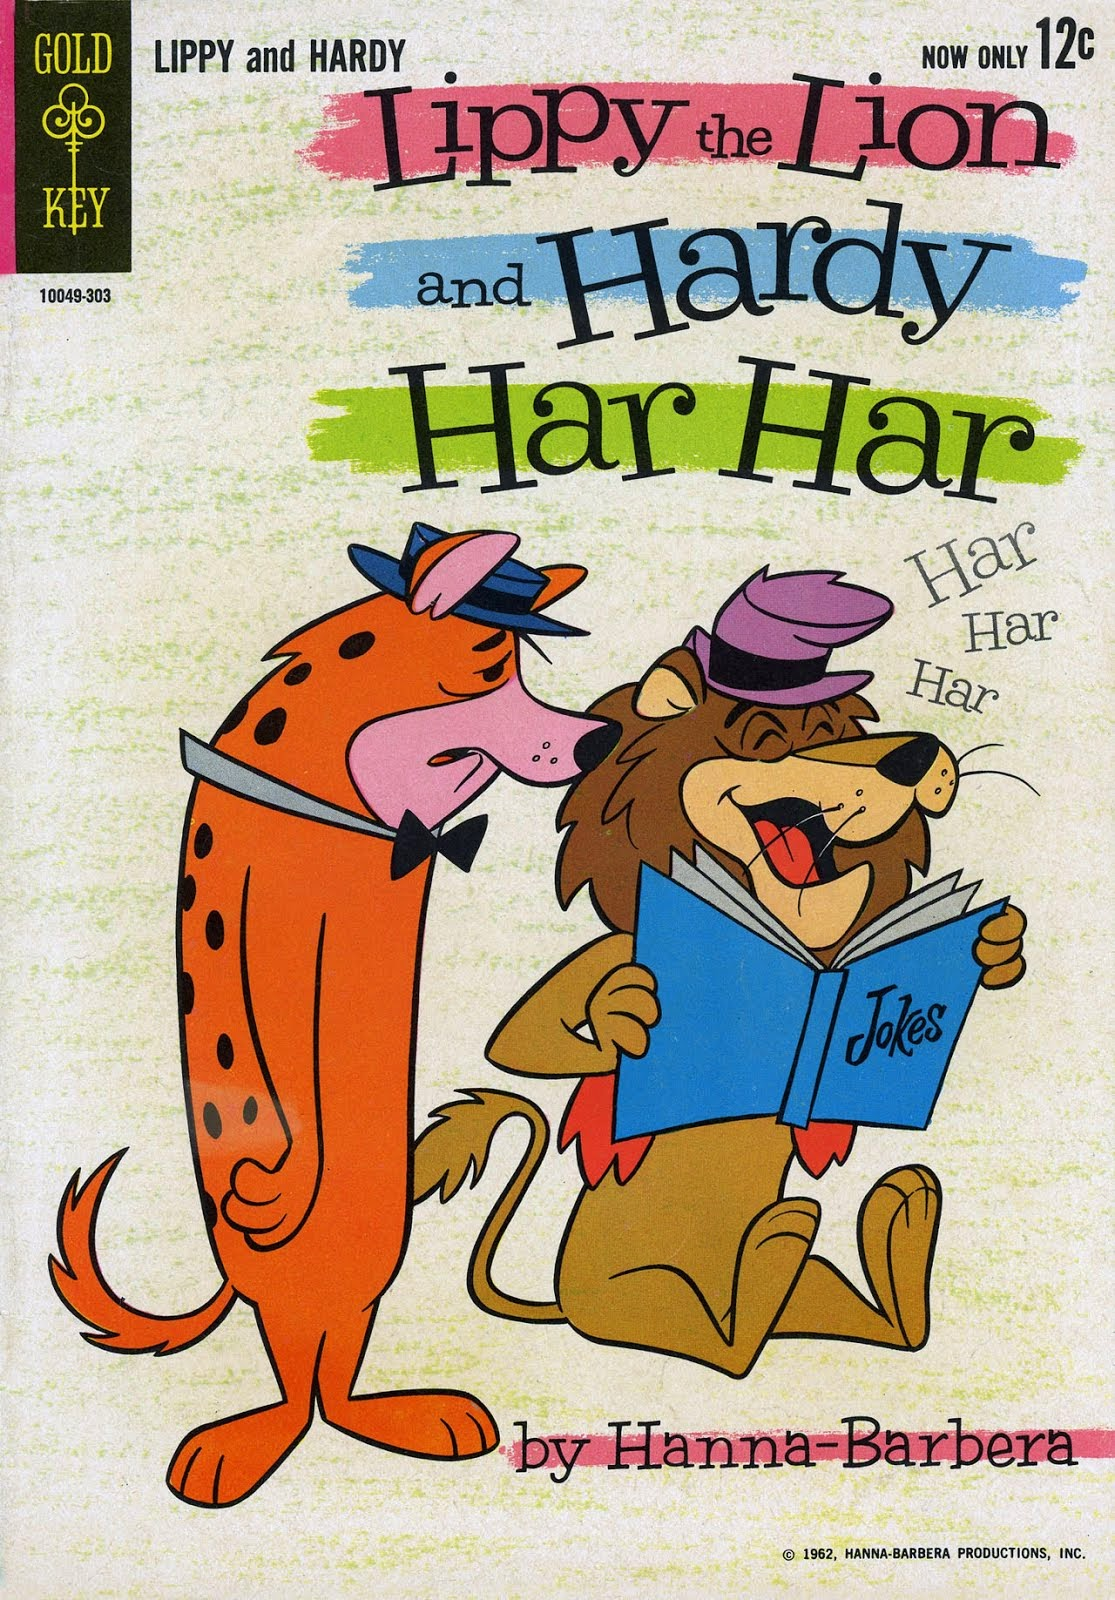 LIPPY E HARDY (LIPPY THE LION AND HARDY HAR HAR)